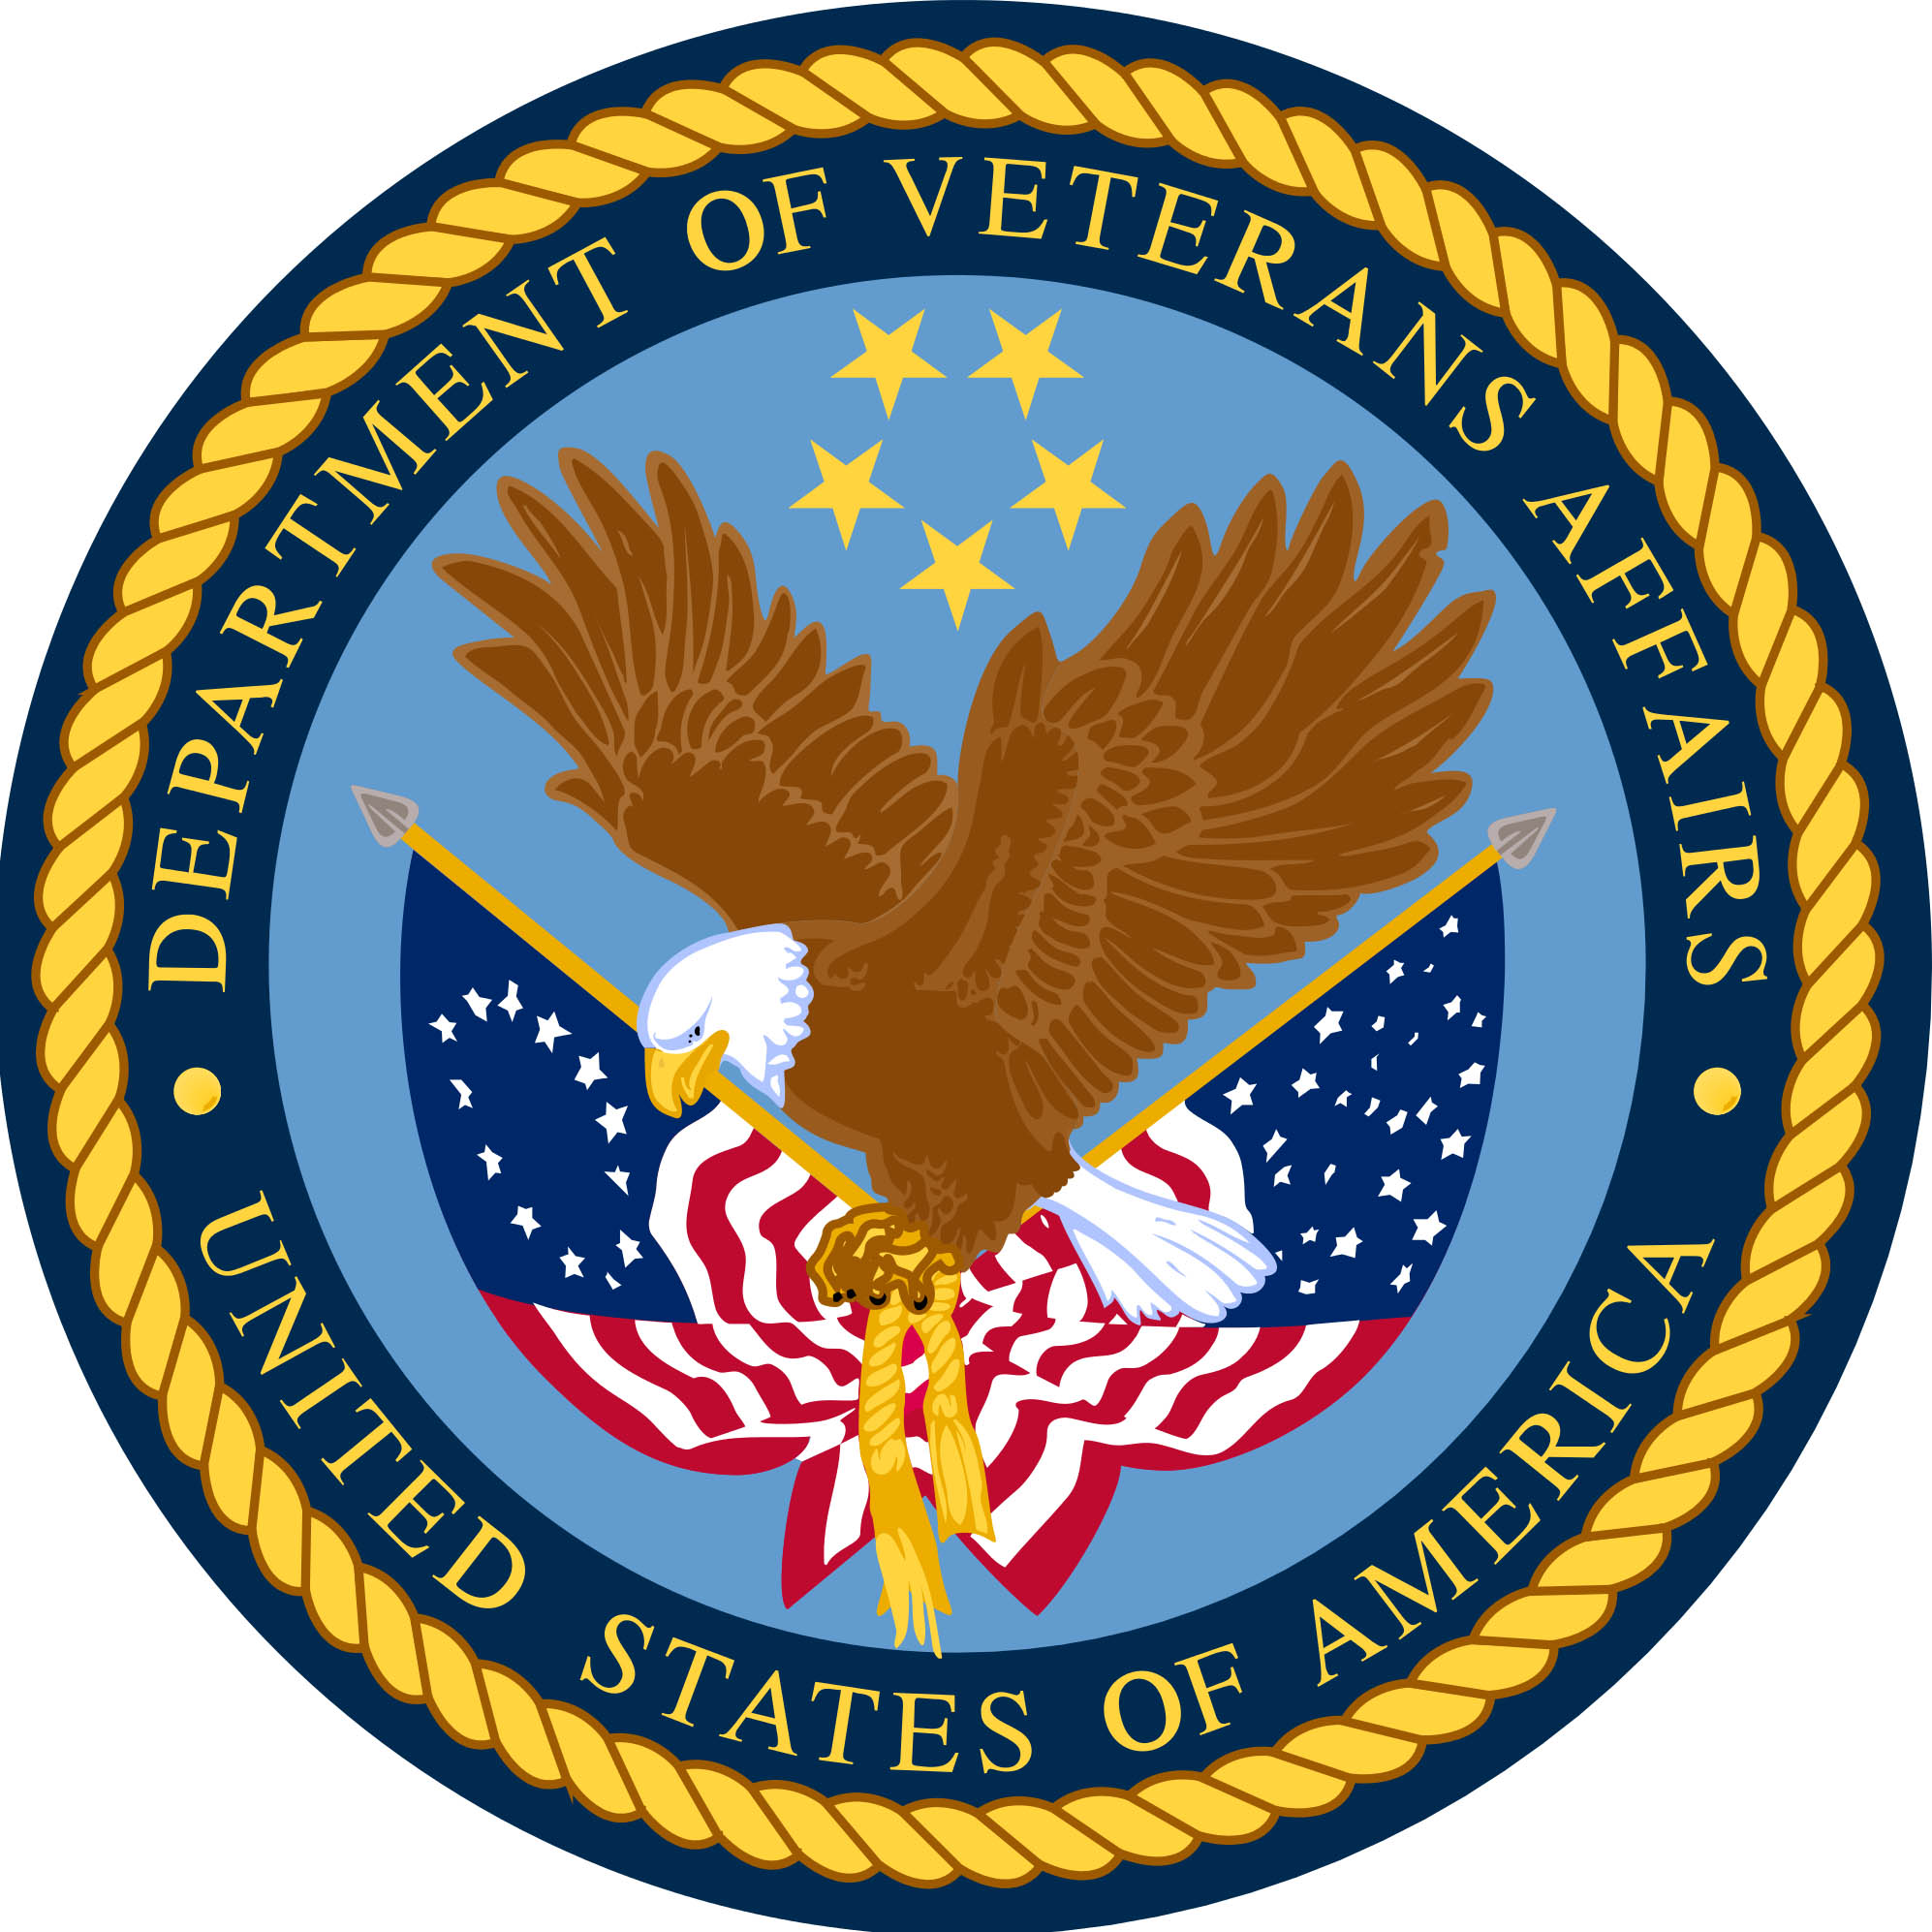 The United States Department of Veterans Affairs